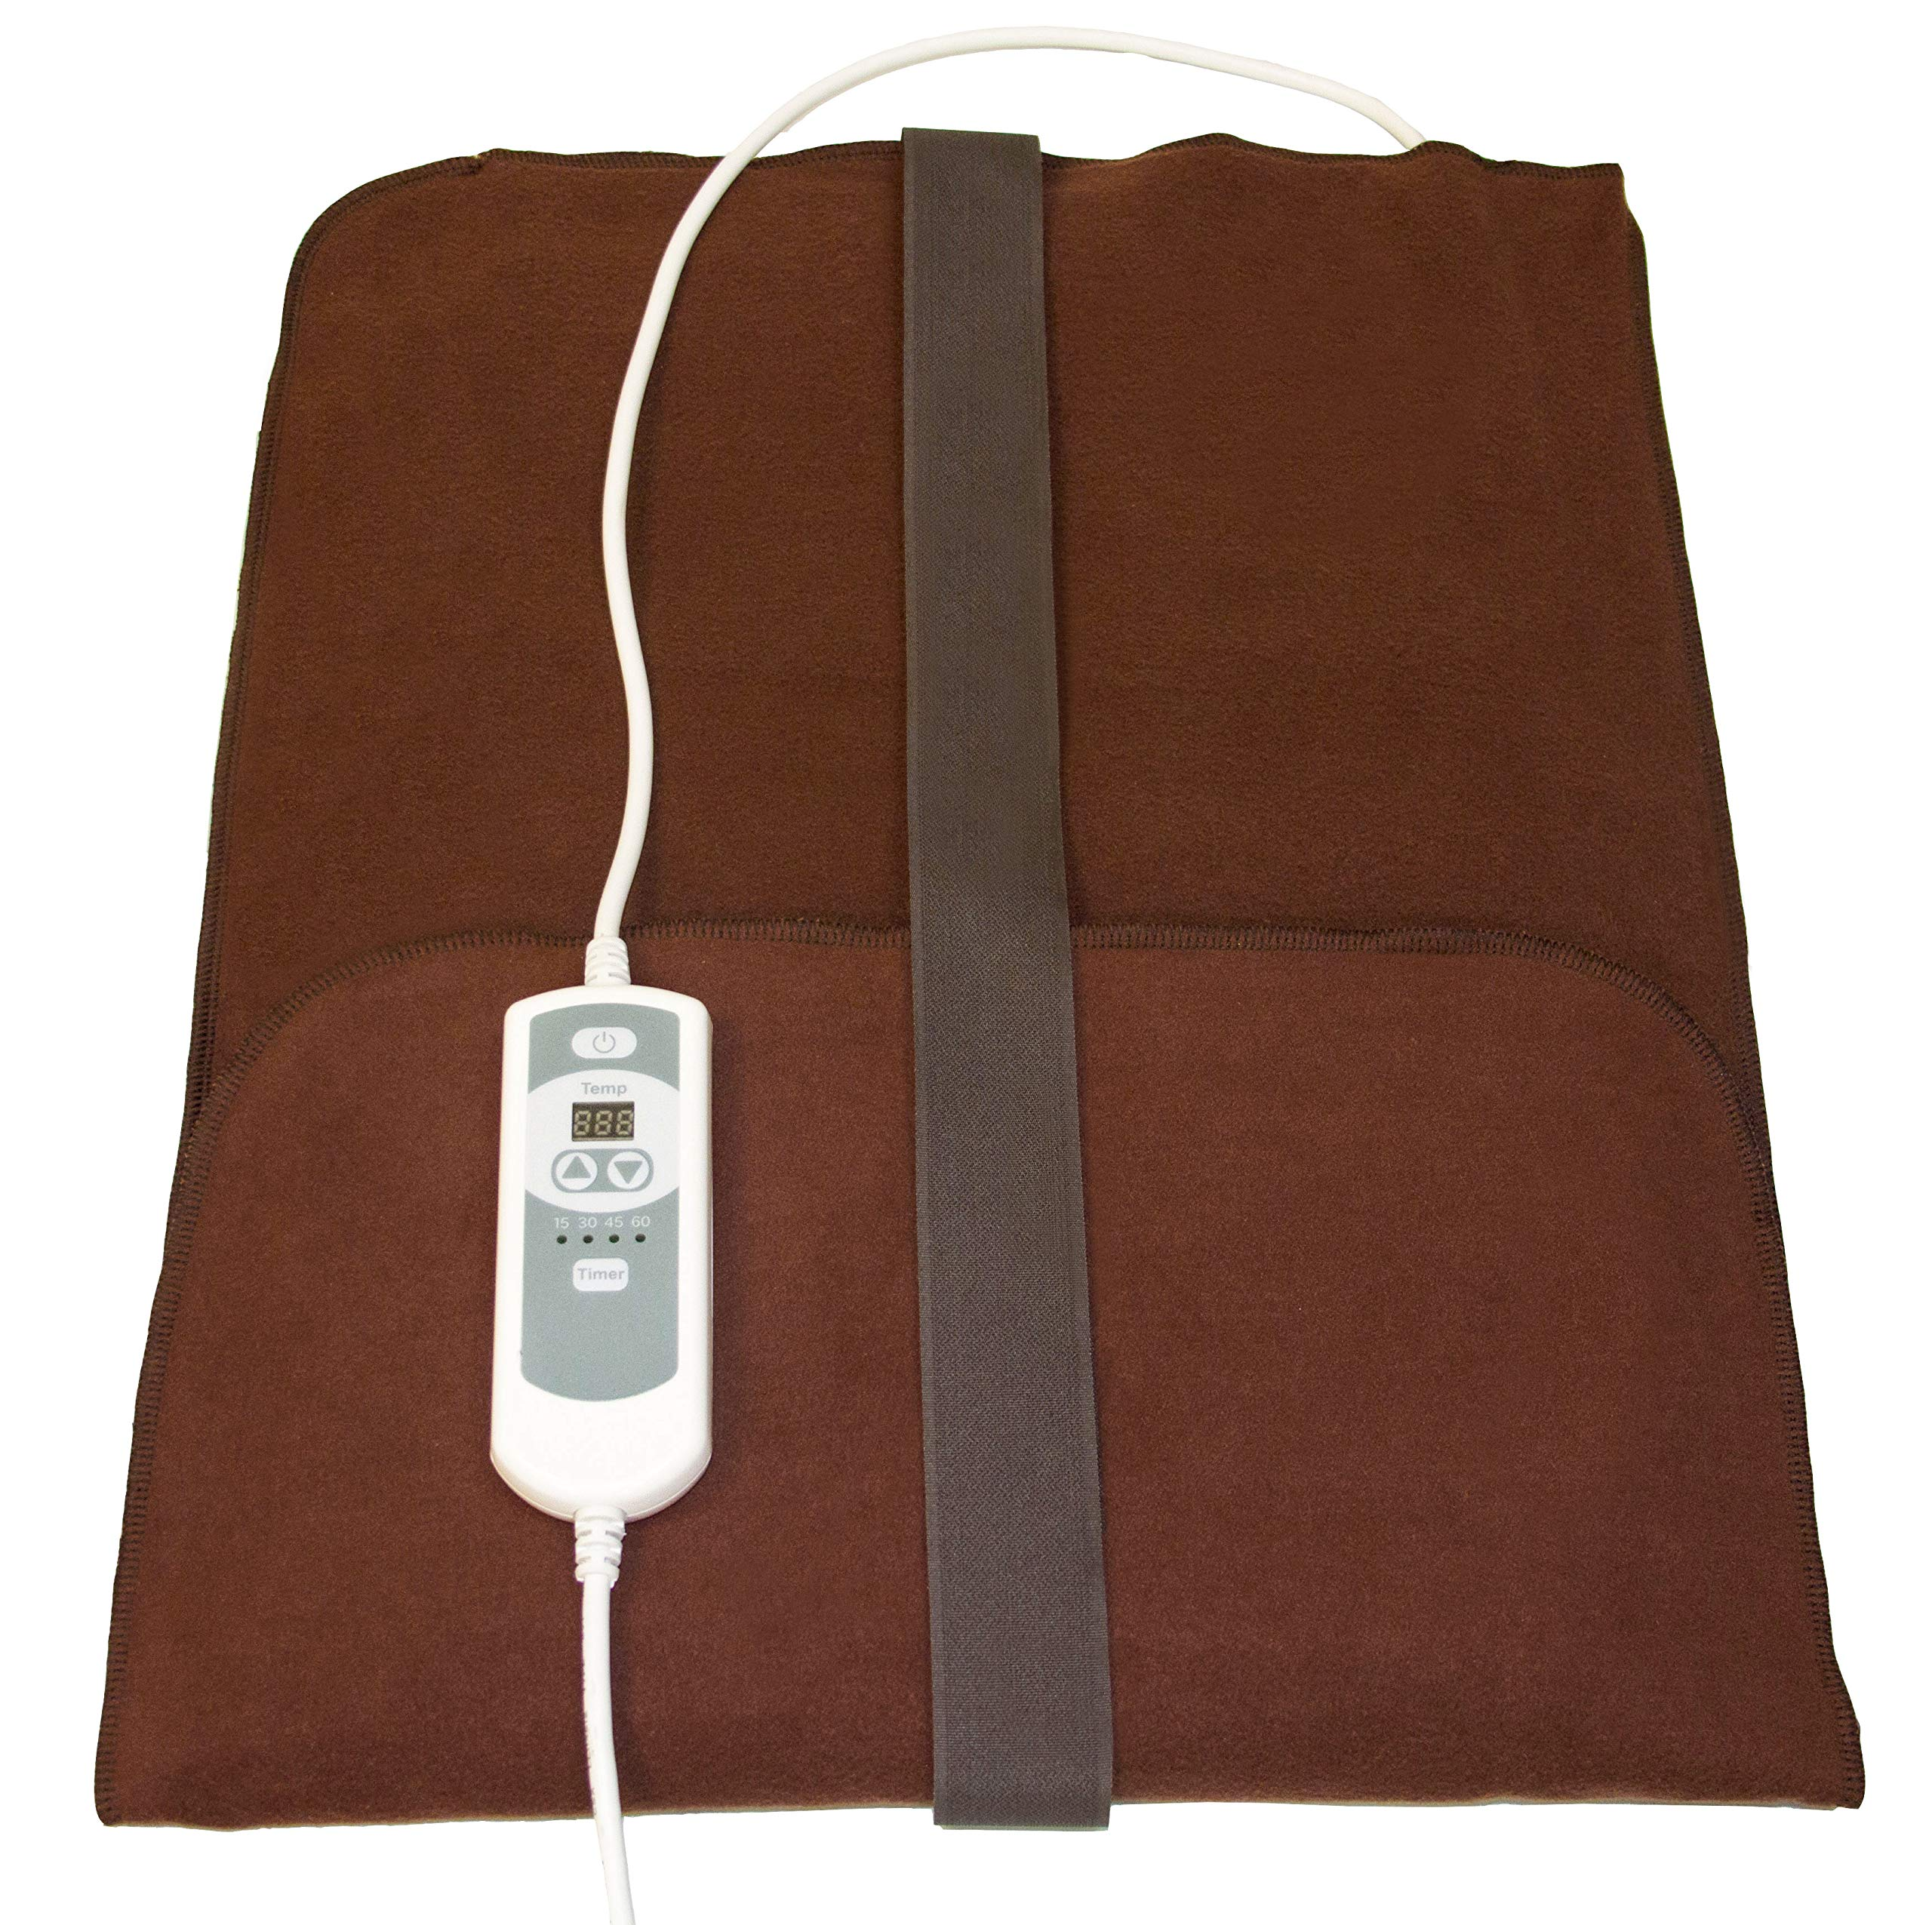 Natural Relief Extra Large Digital Moist Heating Pad with Coral Sand - Auto Shut Off - Strap - Negative Ion (27''x14'') by FCL